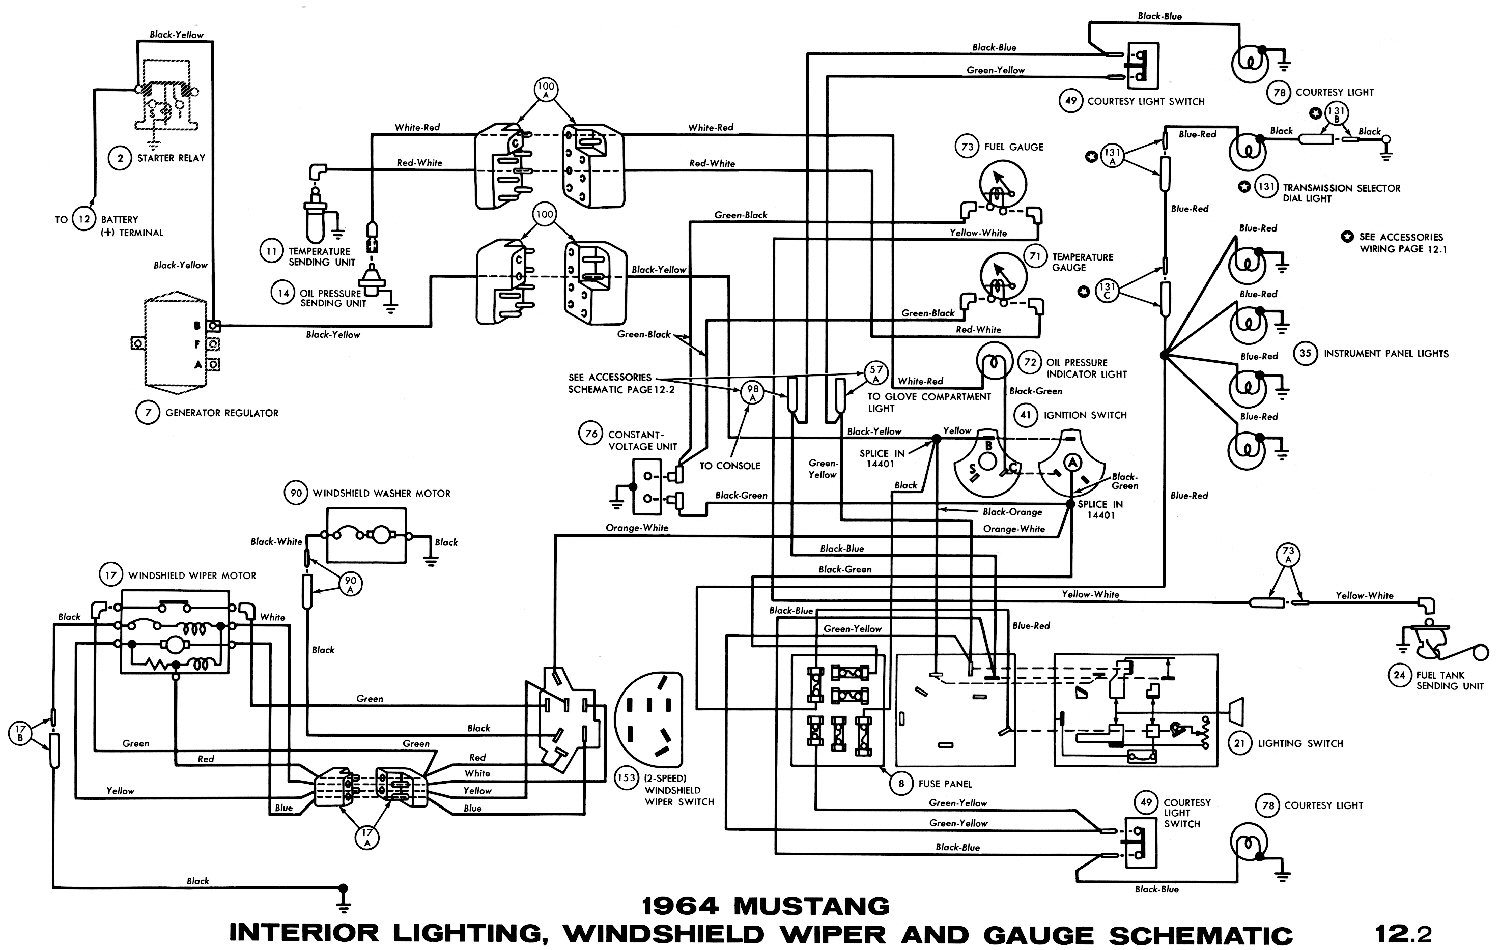 Reverse Light Wiring Diagram 1969 Barracuda Great Installation Of Plymouth Fuel Pressure For 1965 Library Rh 83 Bloxhuette De With